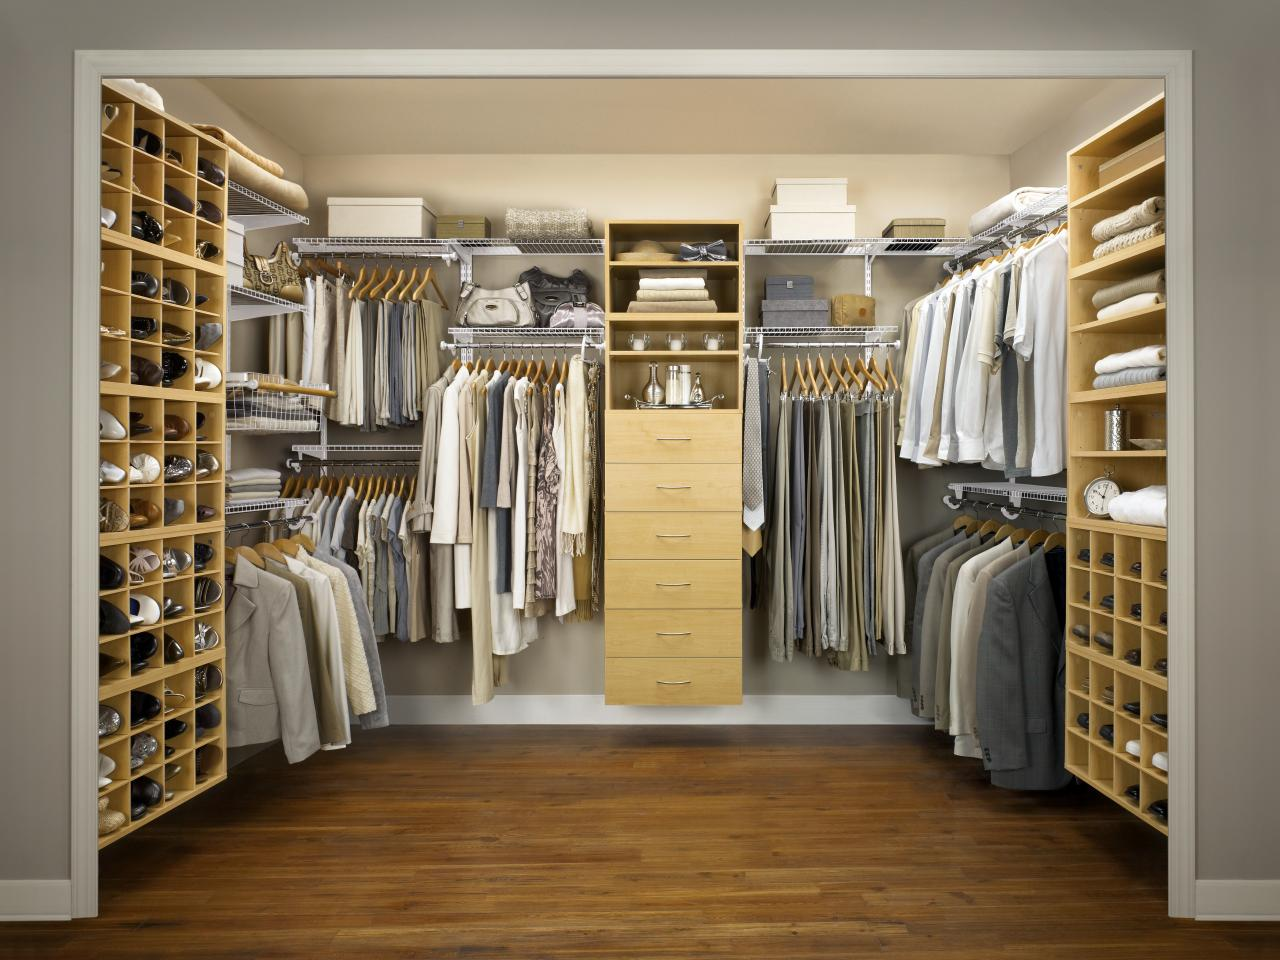 Master Closet Design Ideas full size of bedroom long narrow walk in closet ideas small square walk in closet ideas Spacious Serenity The Distinctive Characteristic Of This Master Closet